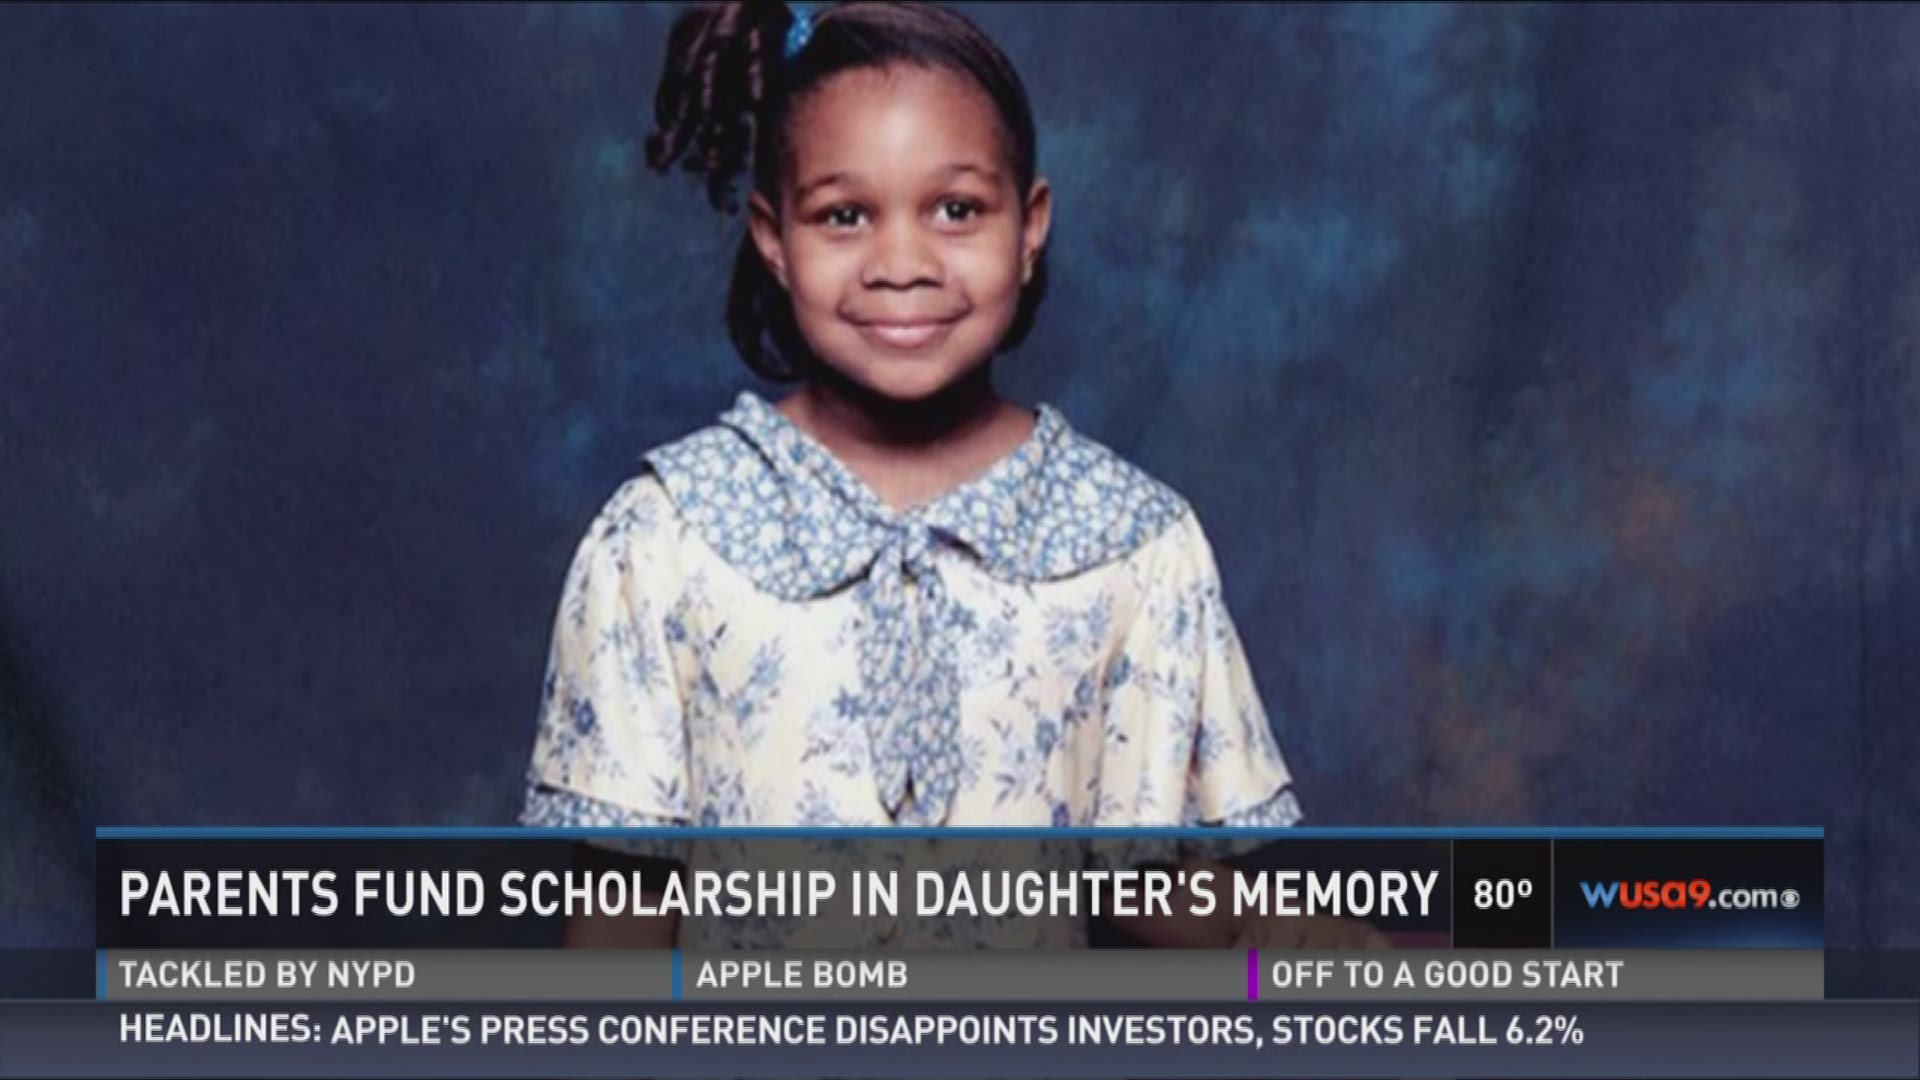 Parents Fund Scholarship In Daughter's Memory 2015